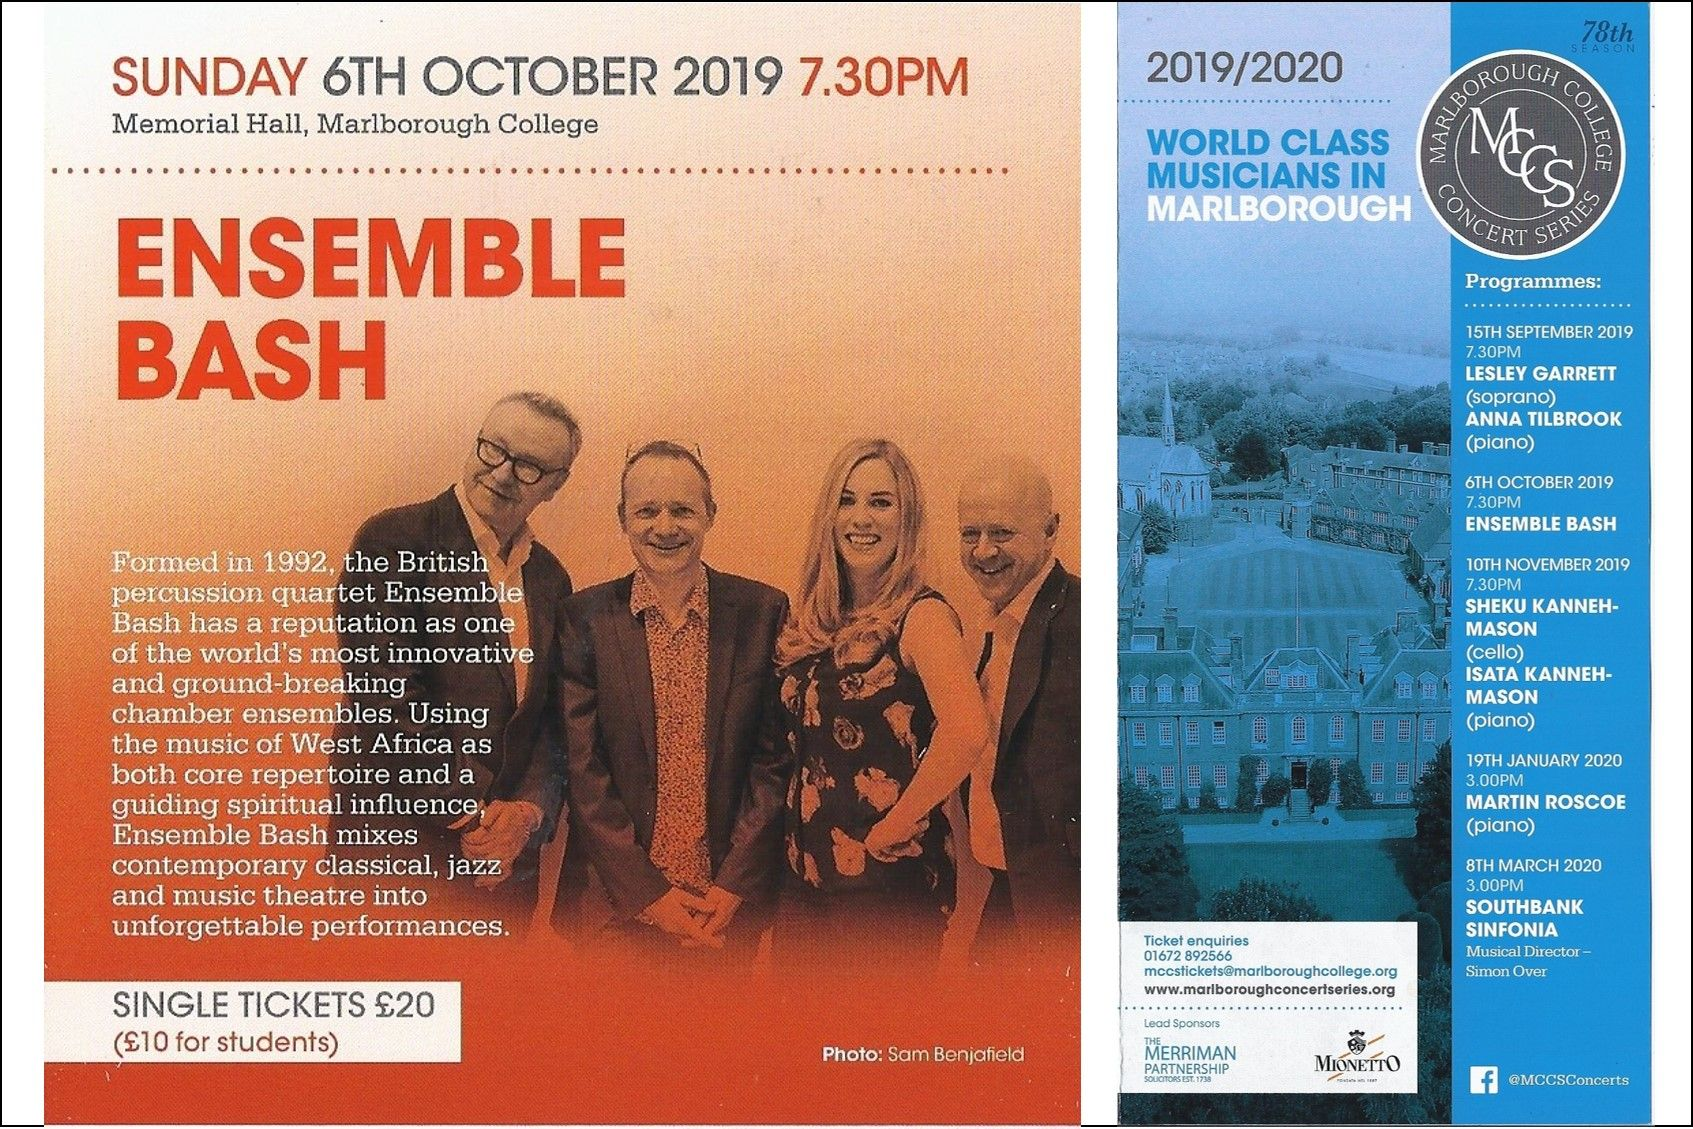 6 October - Ensemble Bash